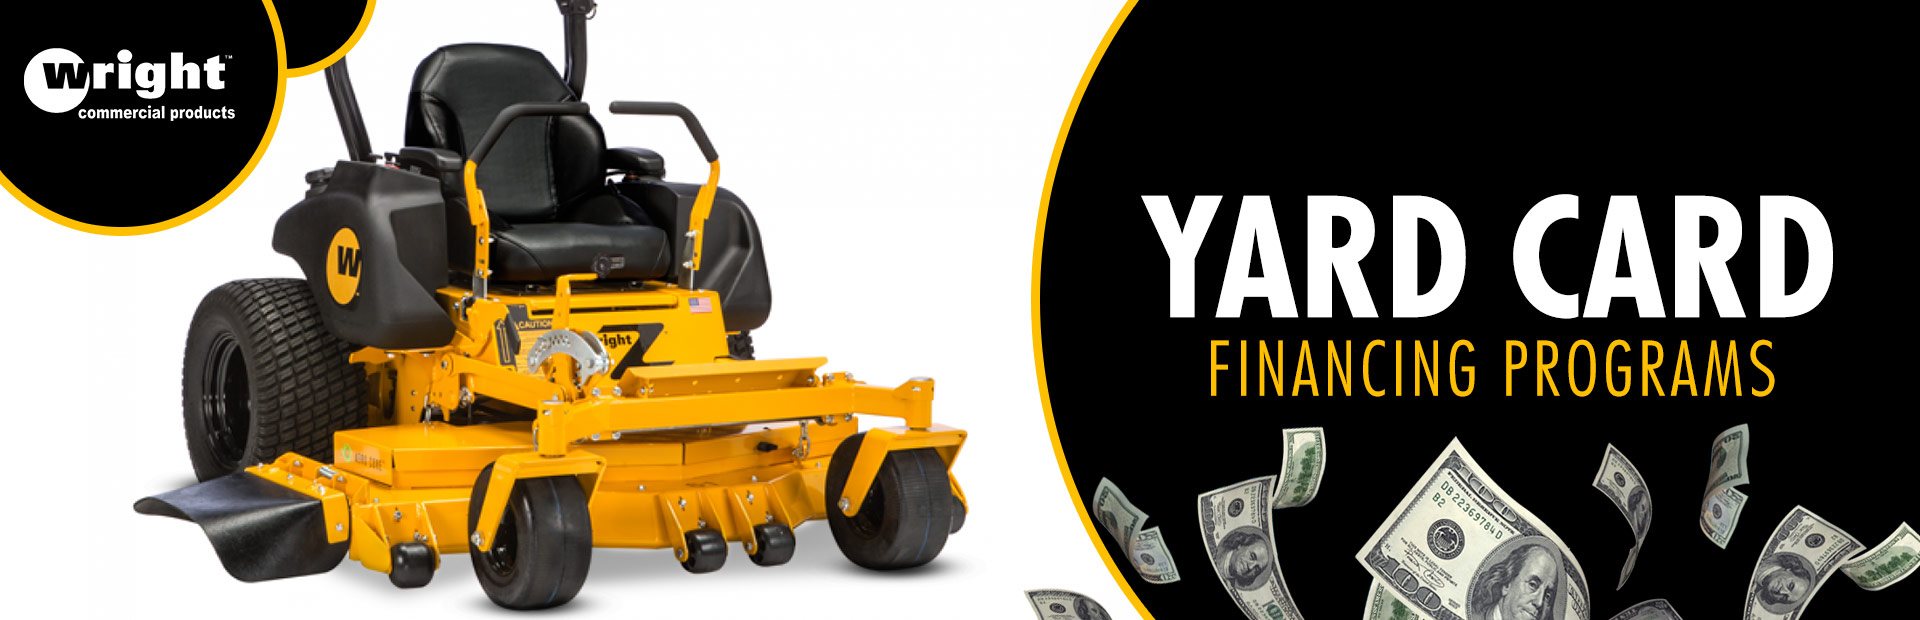 Wright: Wright – Yard Card Financing Programs